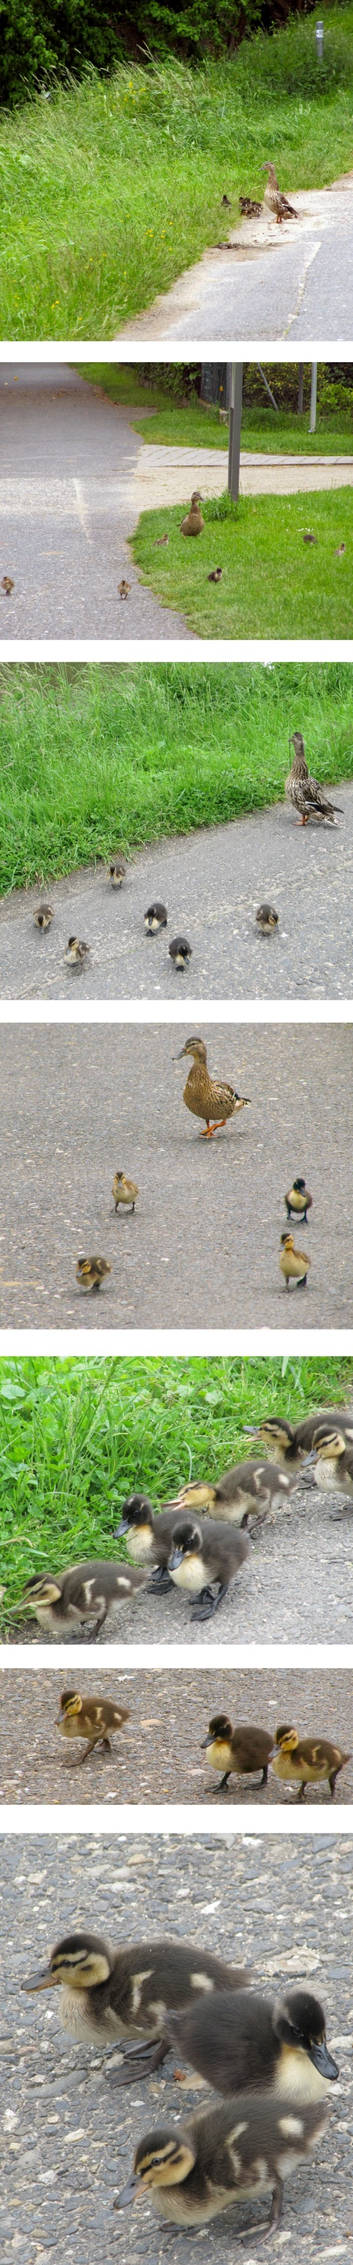 Ducklings on Vacation